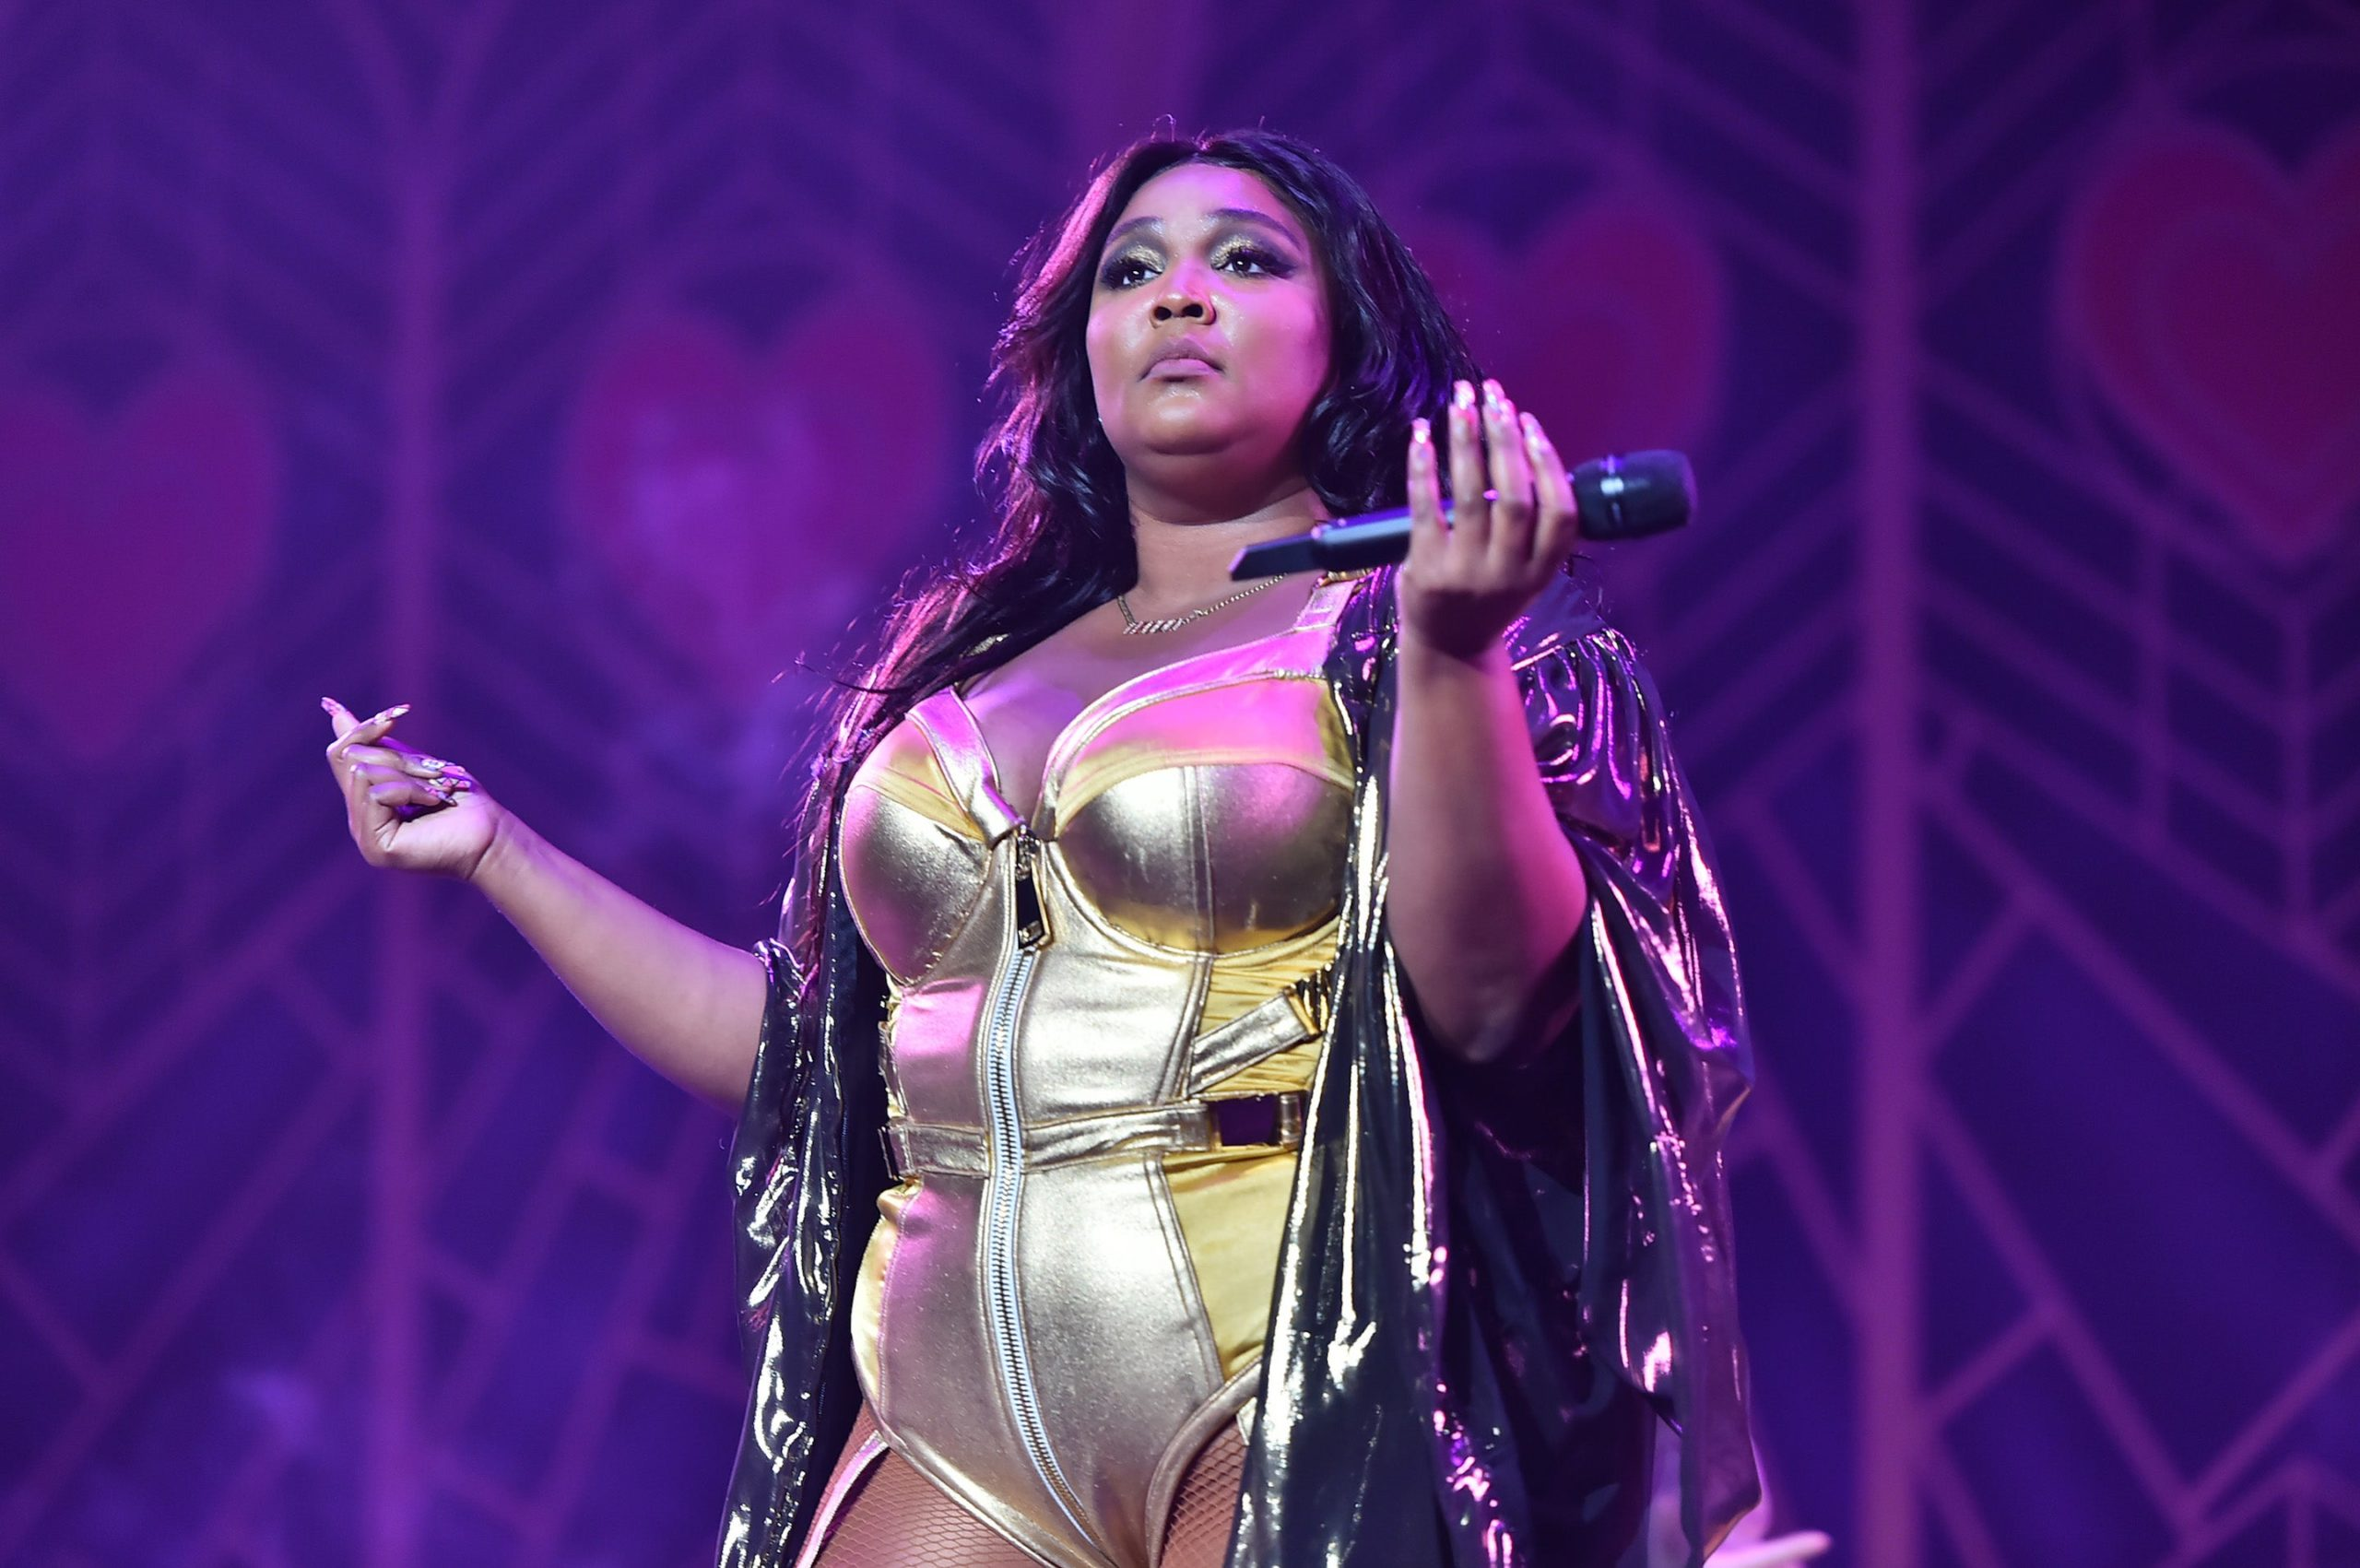 Grammy-Nominated American Singer, Lizzo Shares Nude Photos